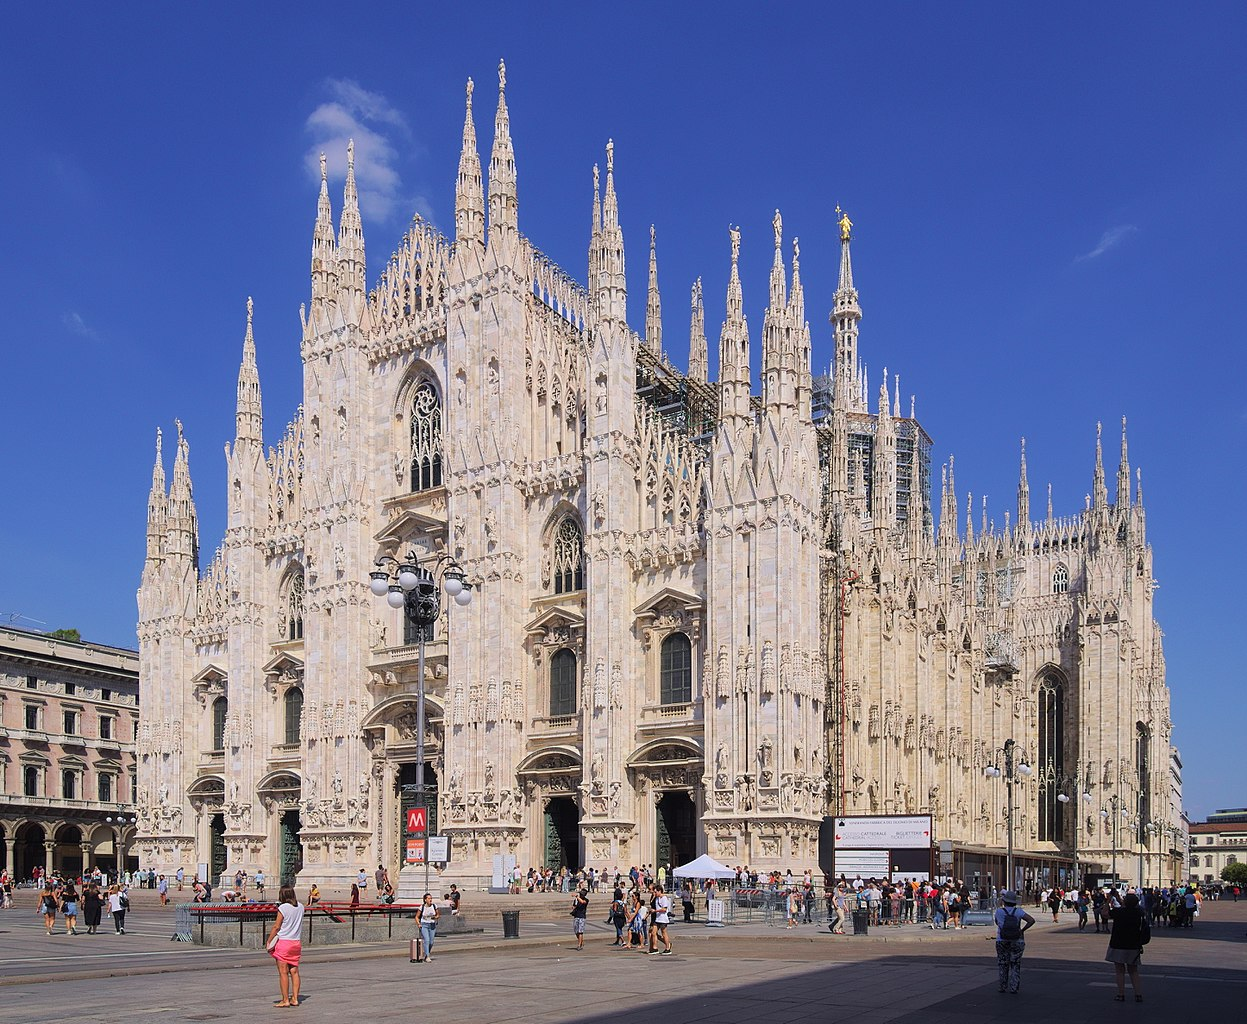 Milan Cathedral. Image courtesy of Wikimedia Commons